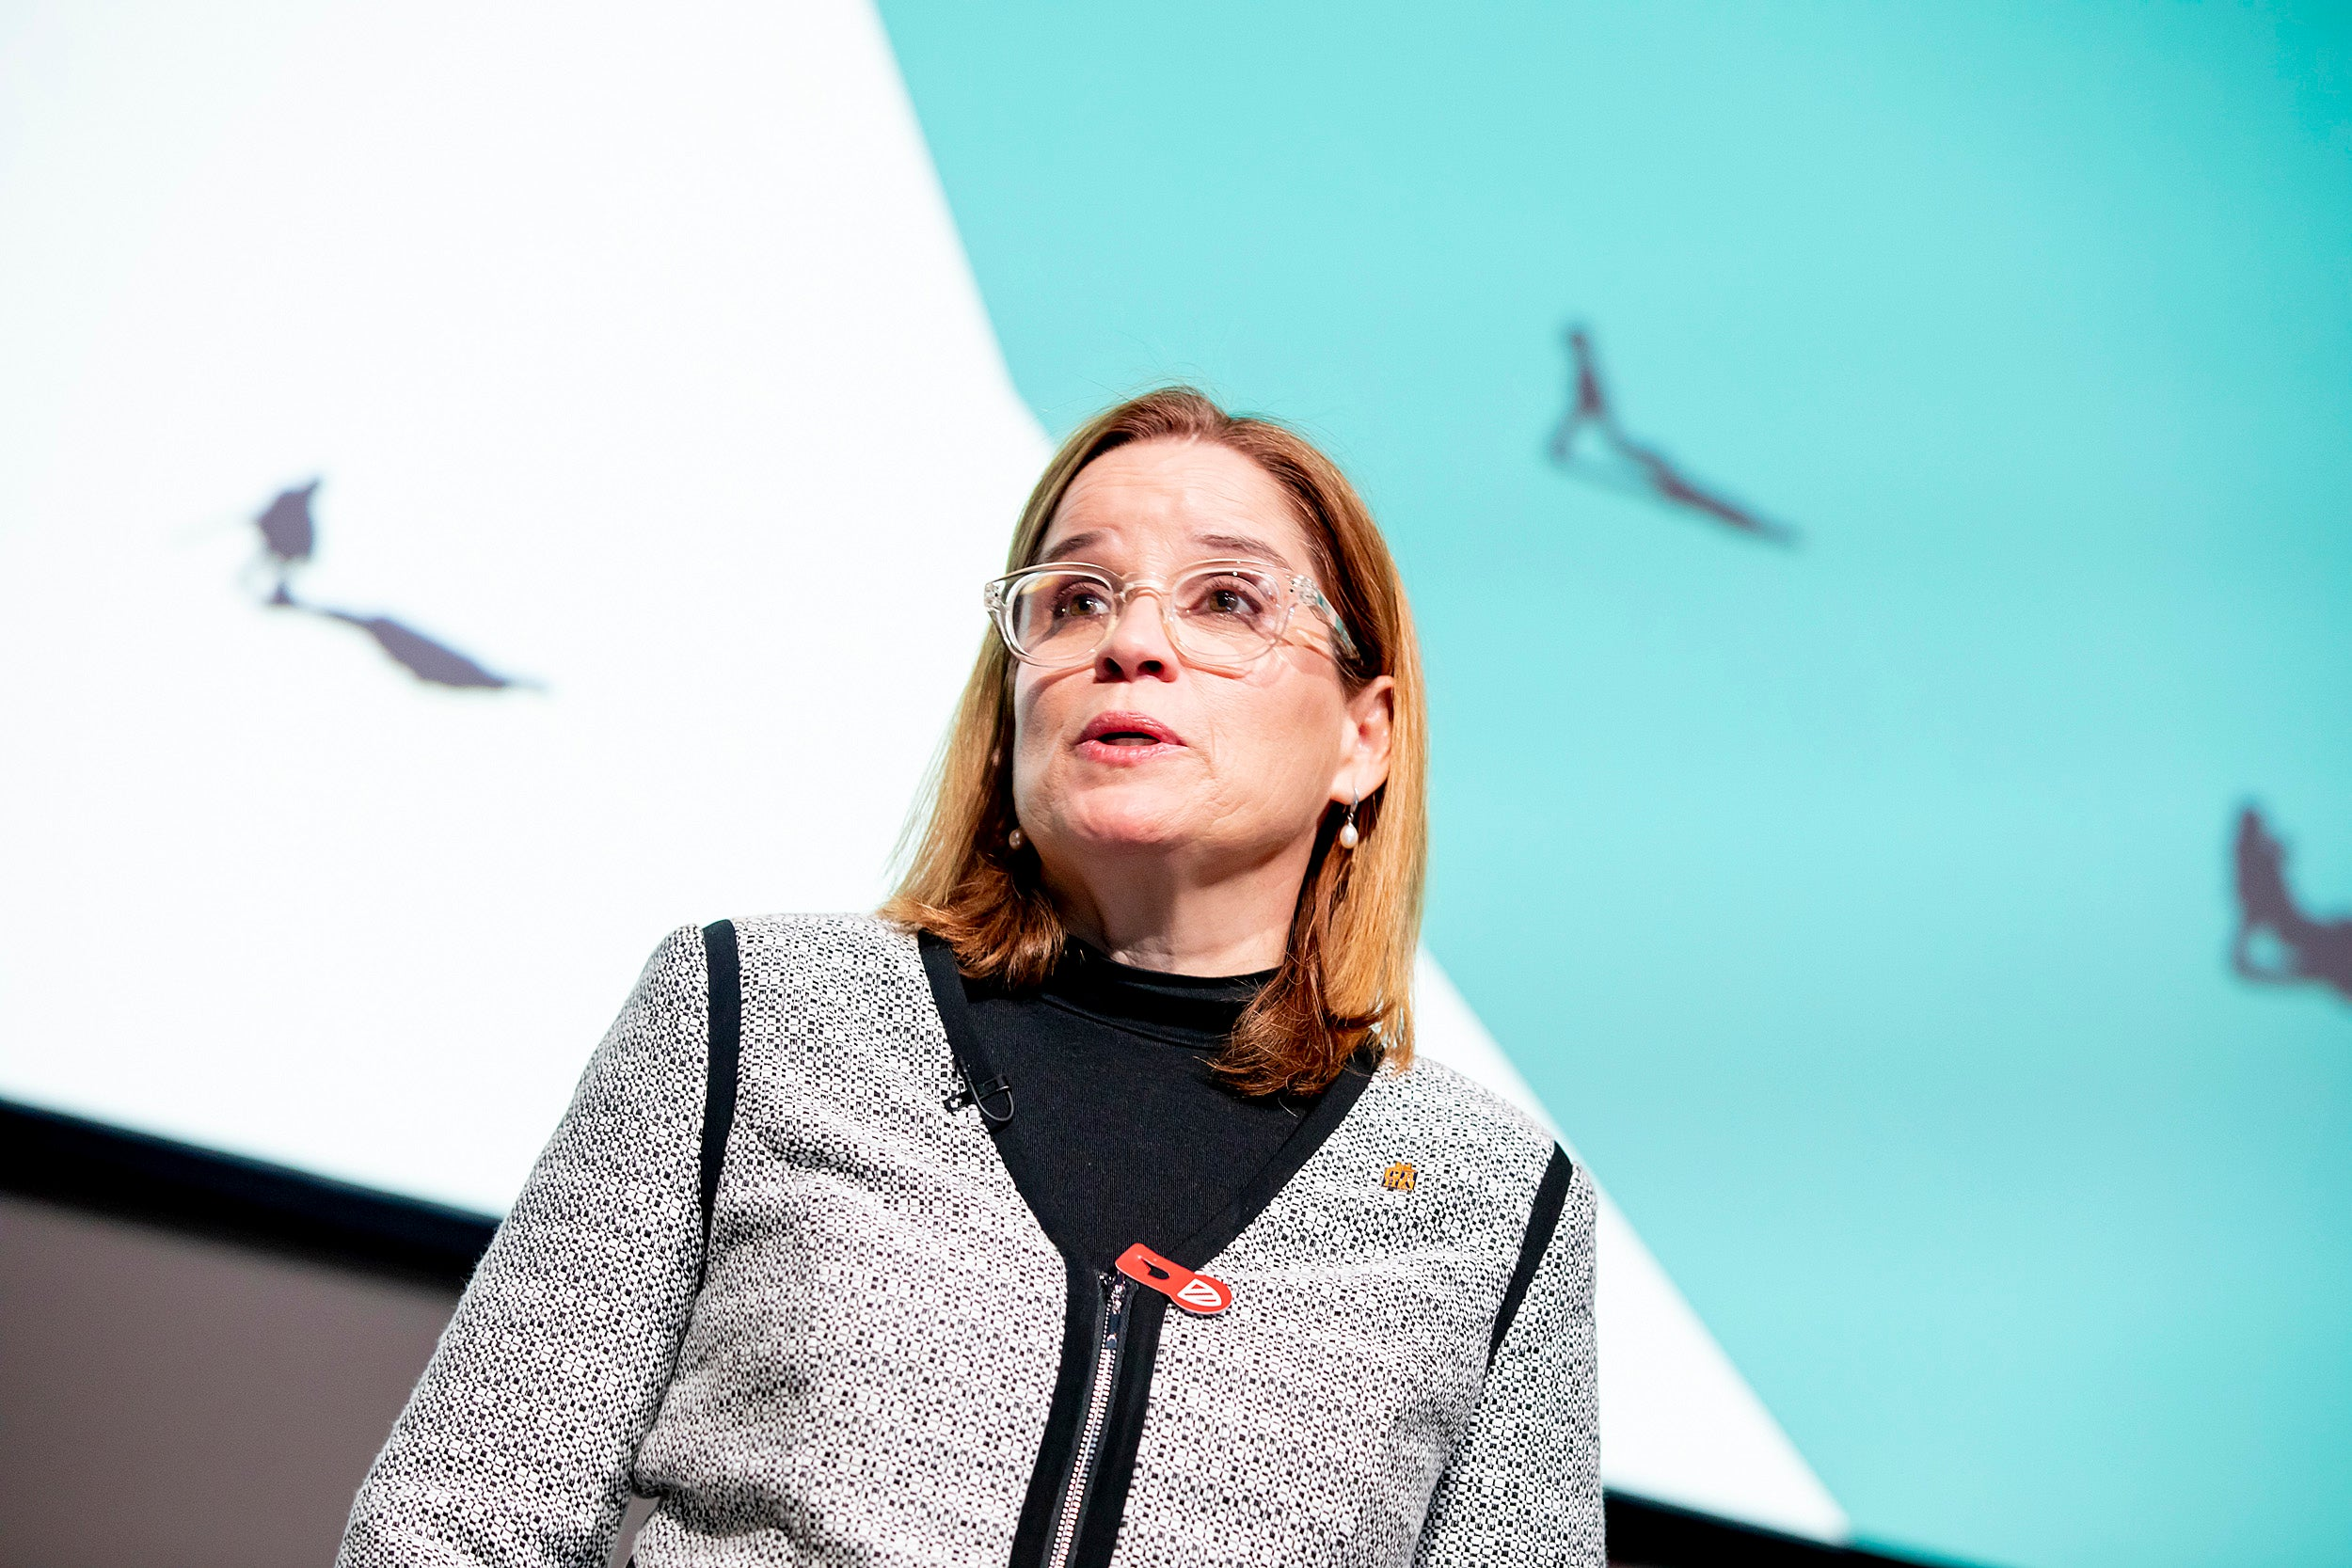 Carmen Yulín Cruz, mayor of San Juan, Puerto Rico, speaks at a Radcliffe conference about citizenship.